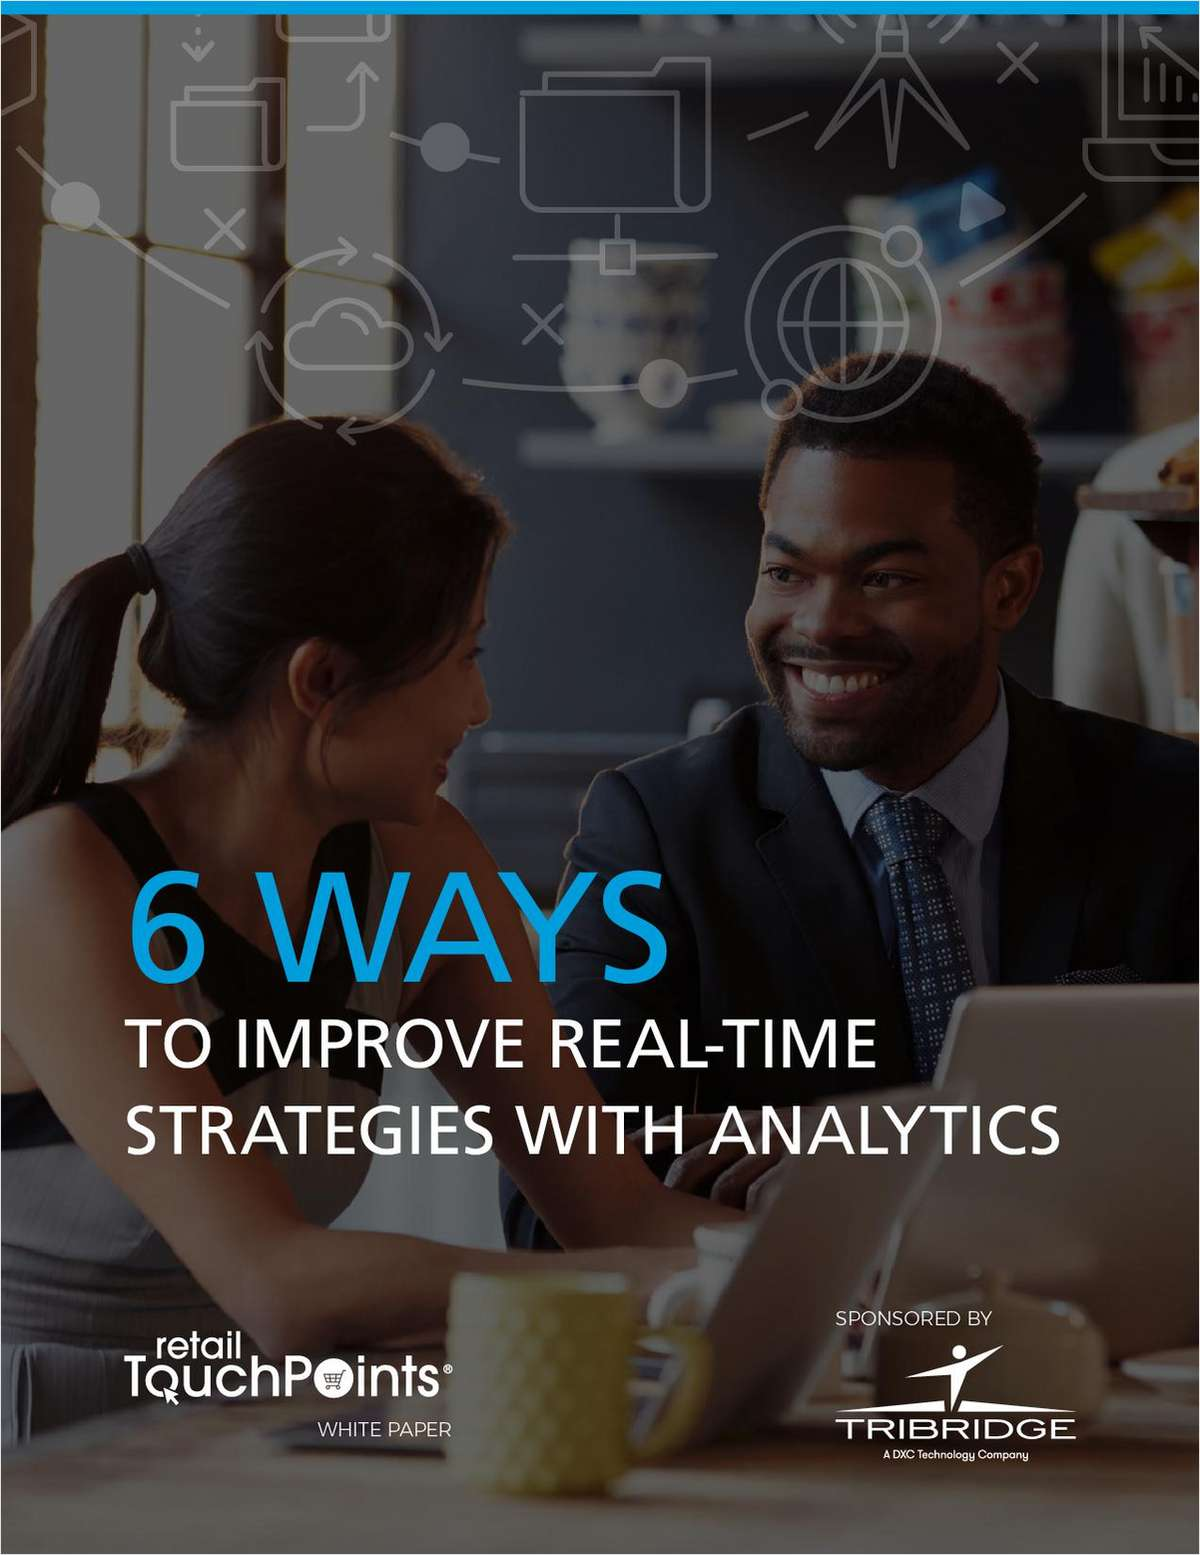 6 Ways to Improve Real-Time Strategies with Analytics